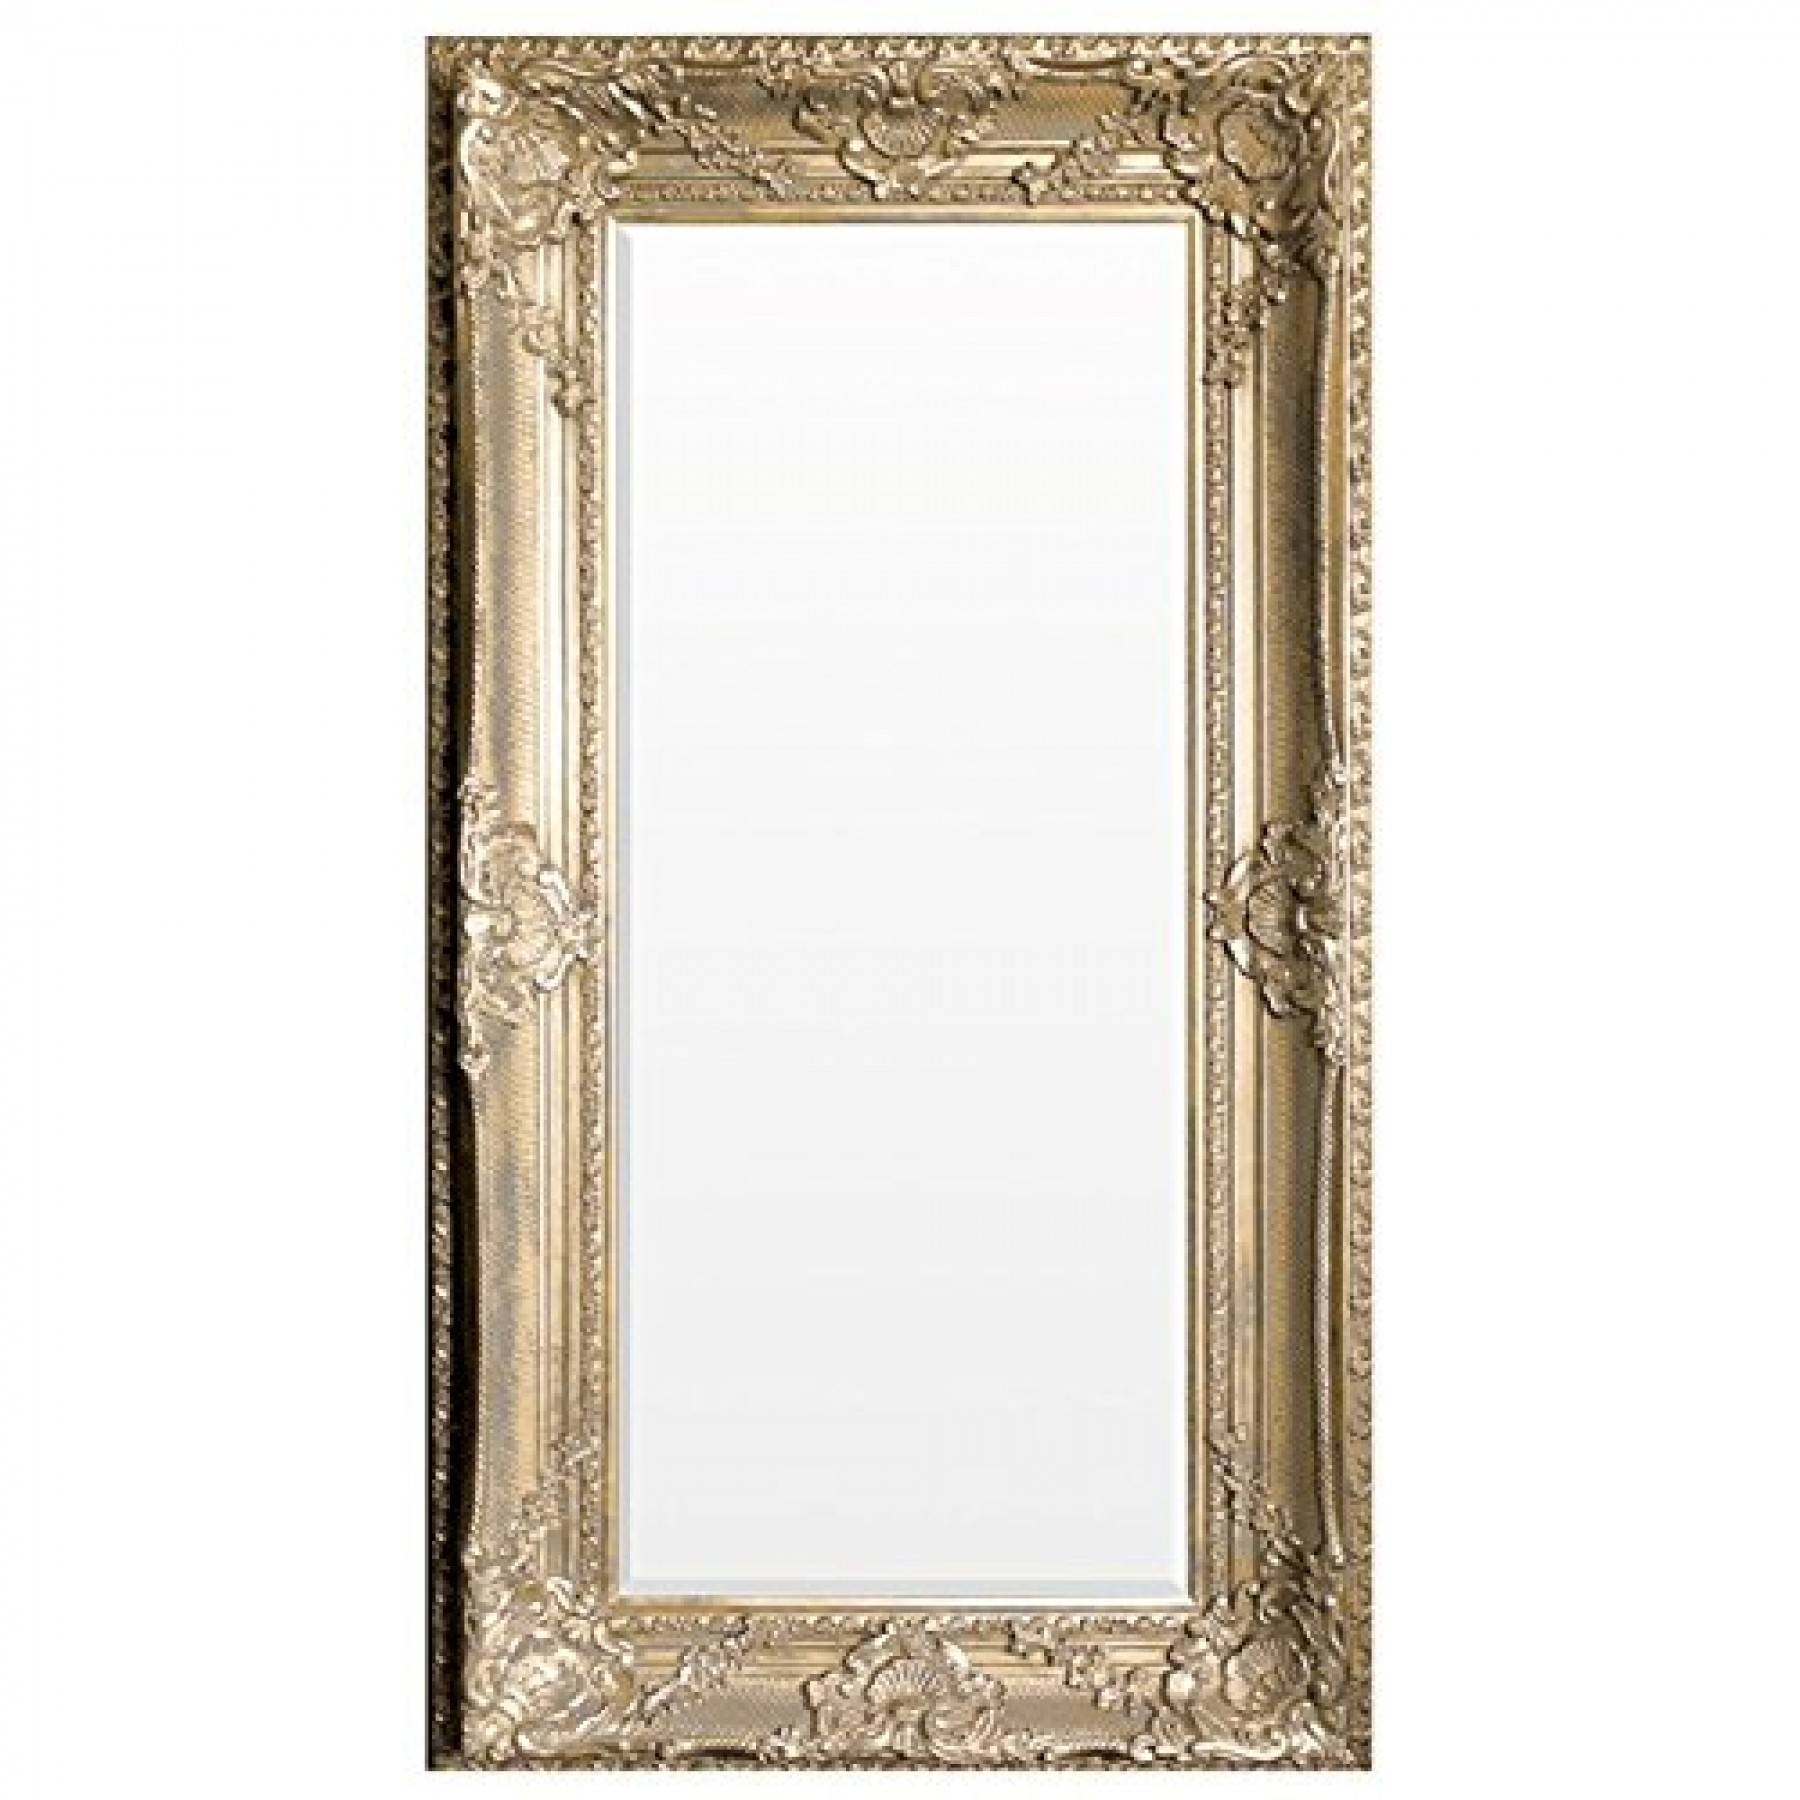 Ornate Shabby Chic Mirror (Extra Large) intended for Gold Shabby Chic Mirrors (Image 14 of 15)